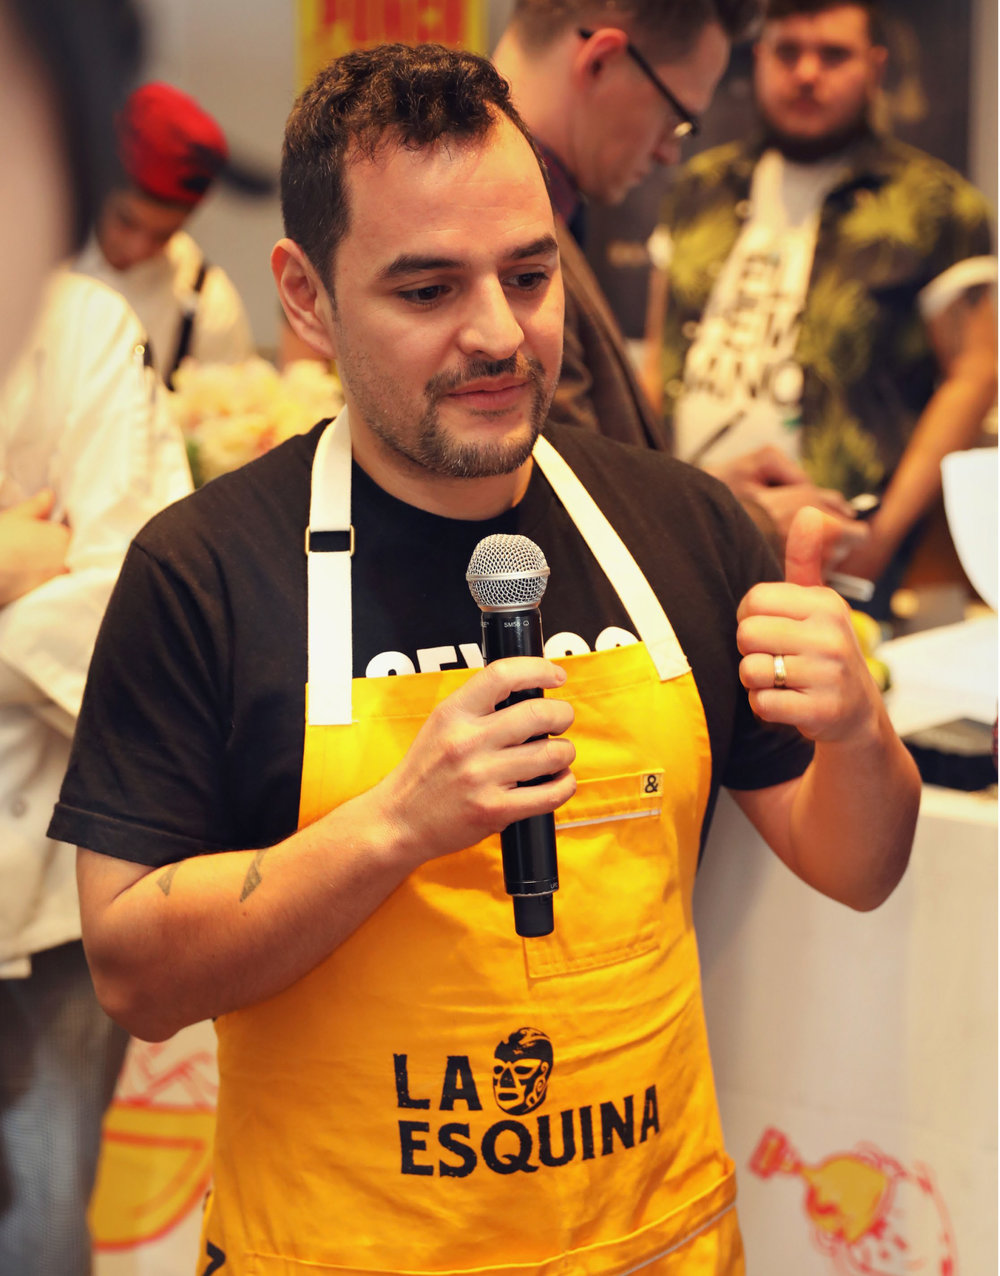 Chef Fabian Gallardo of La Esquina